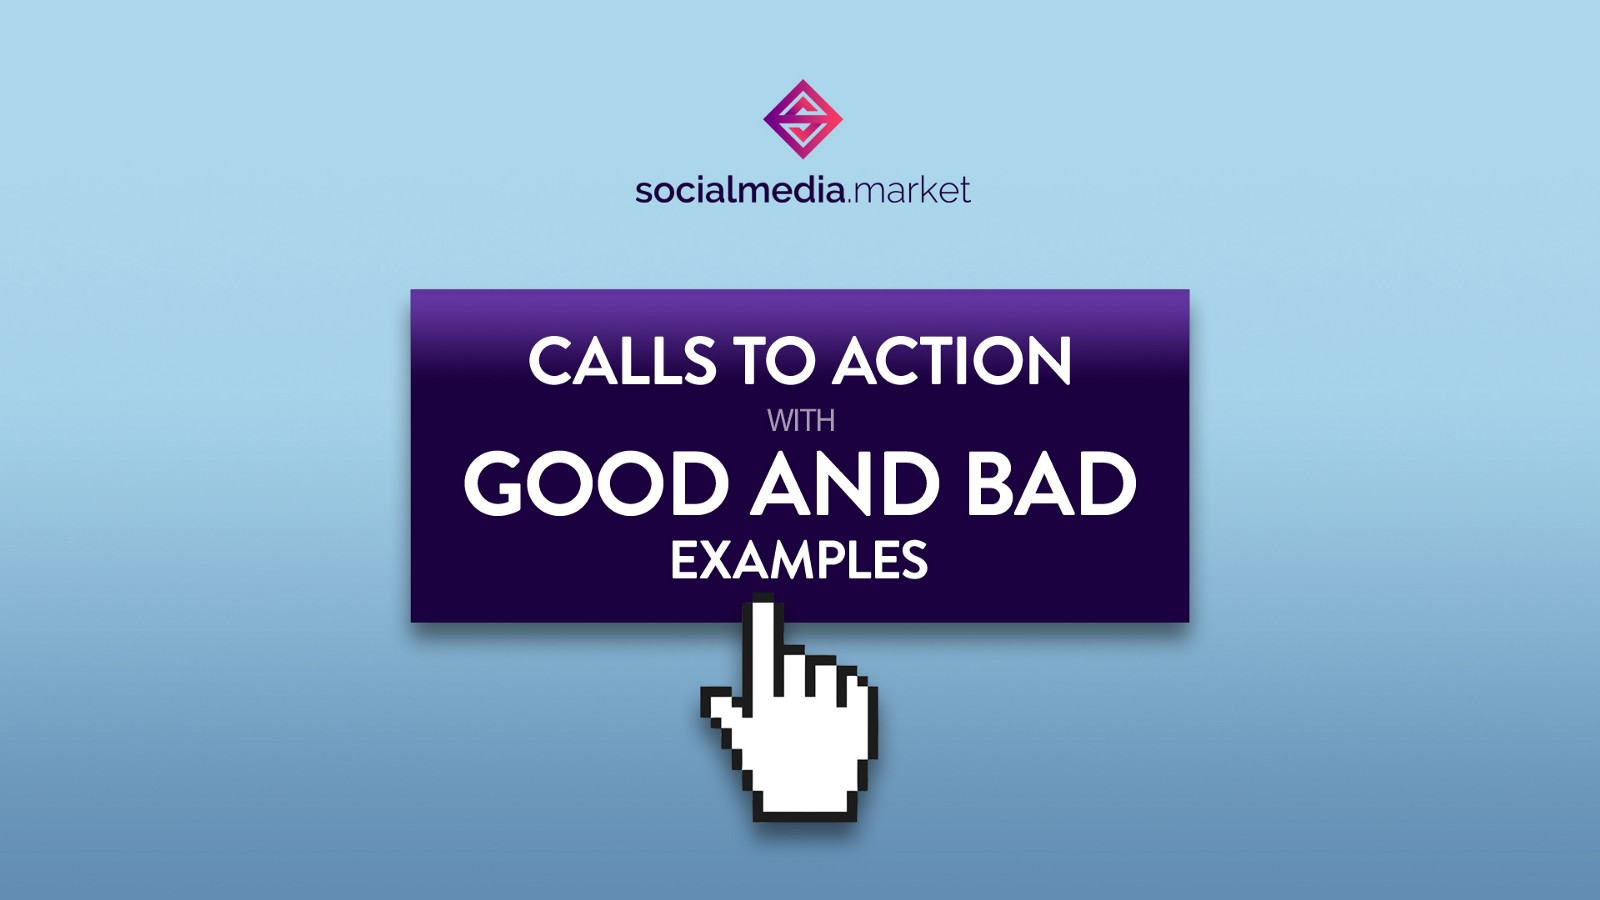 Bad 24 Calls To Action With Good And Bad Examples Socialmedia Market